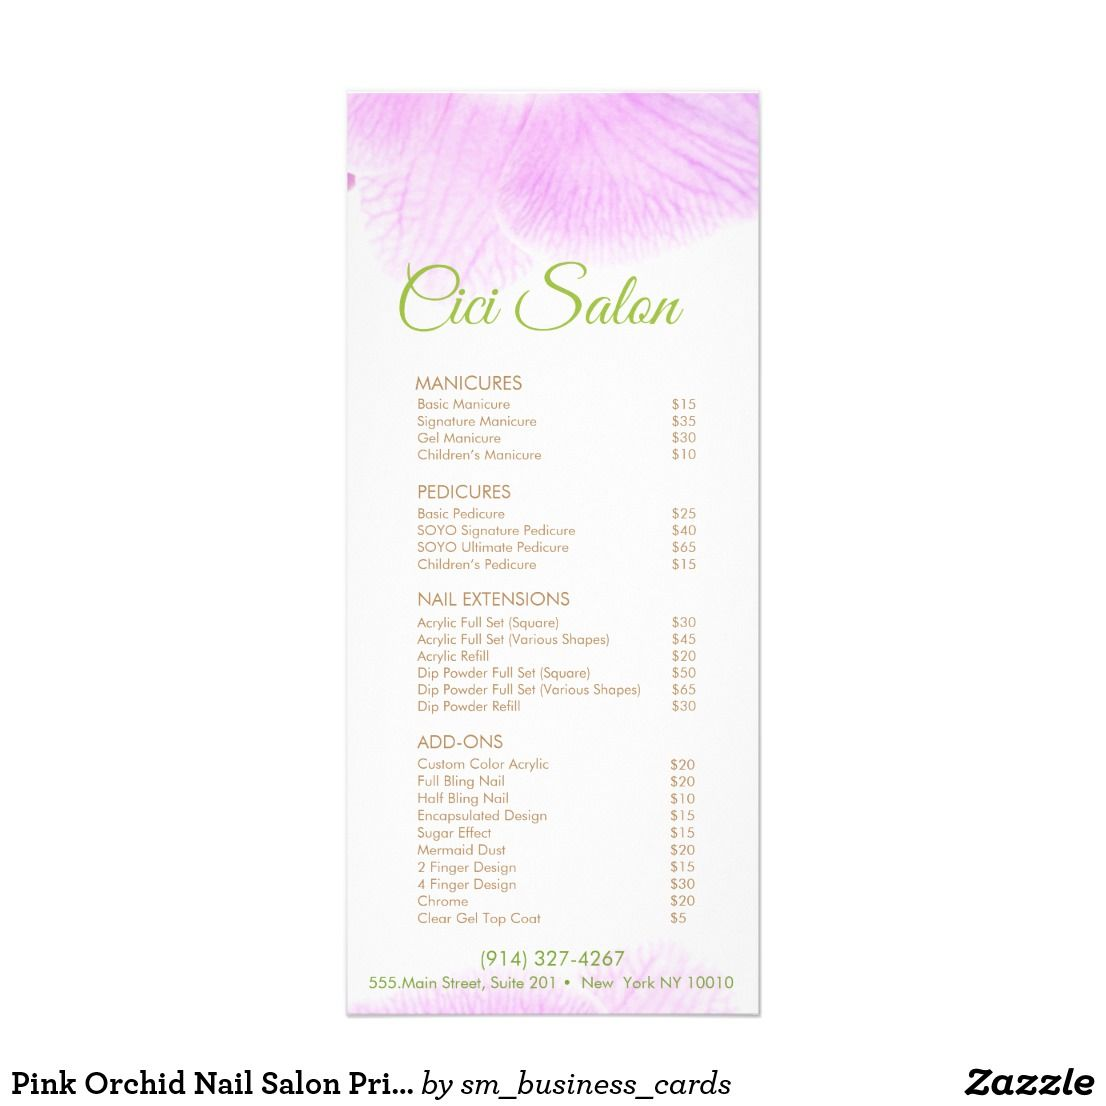 Pink Orchid Nail Salon Price List Service Menu  Nail Salon